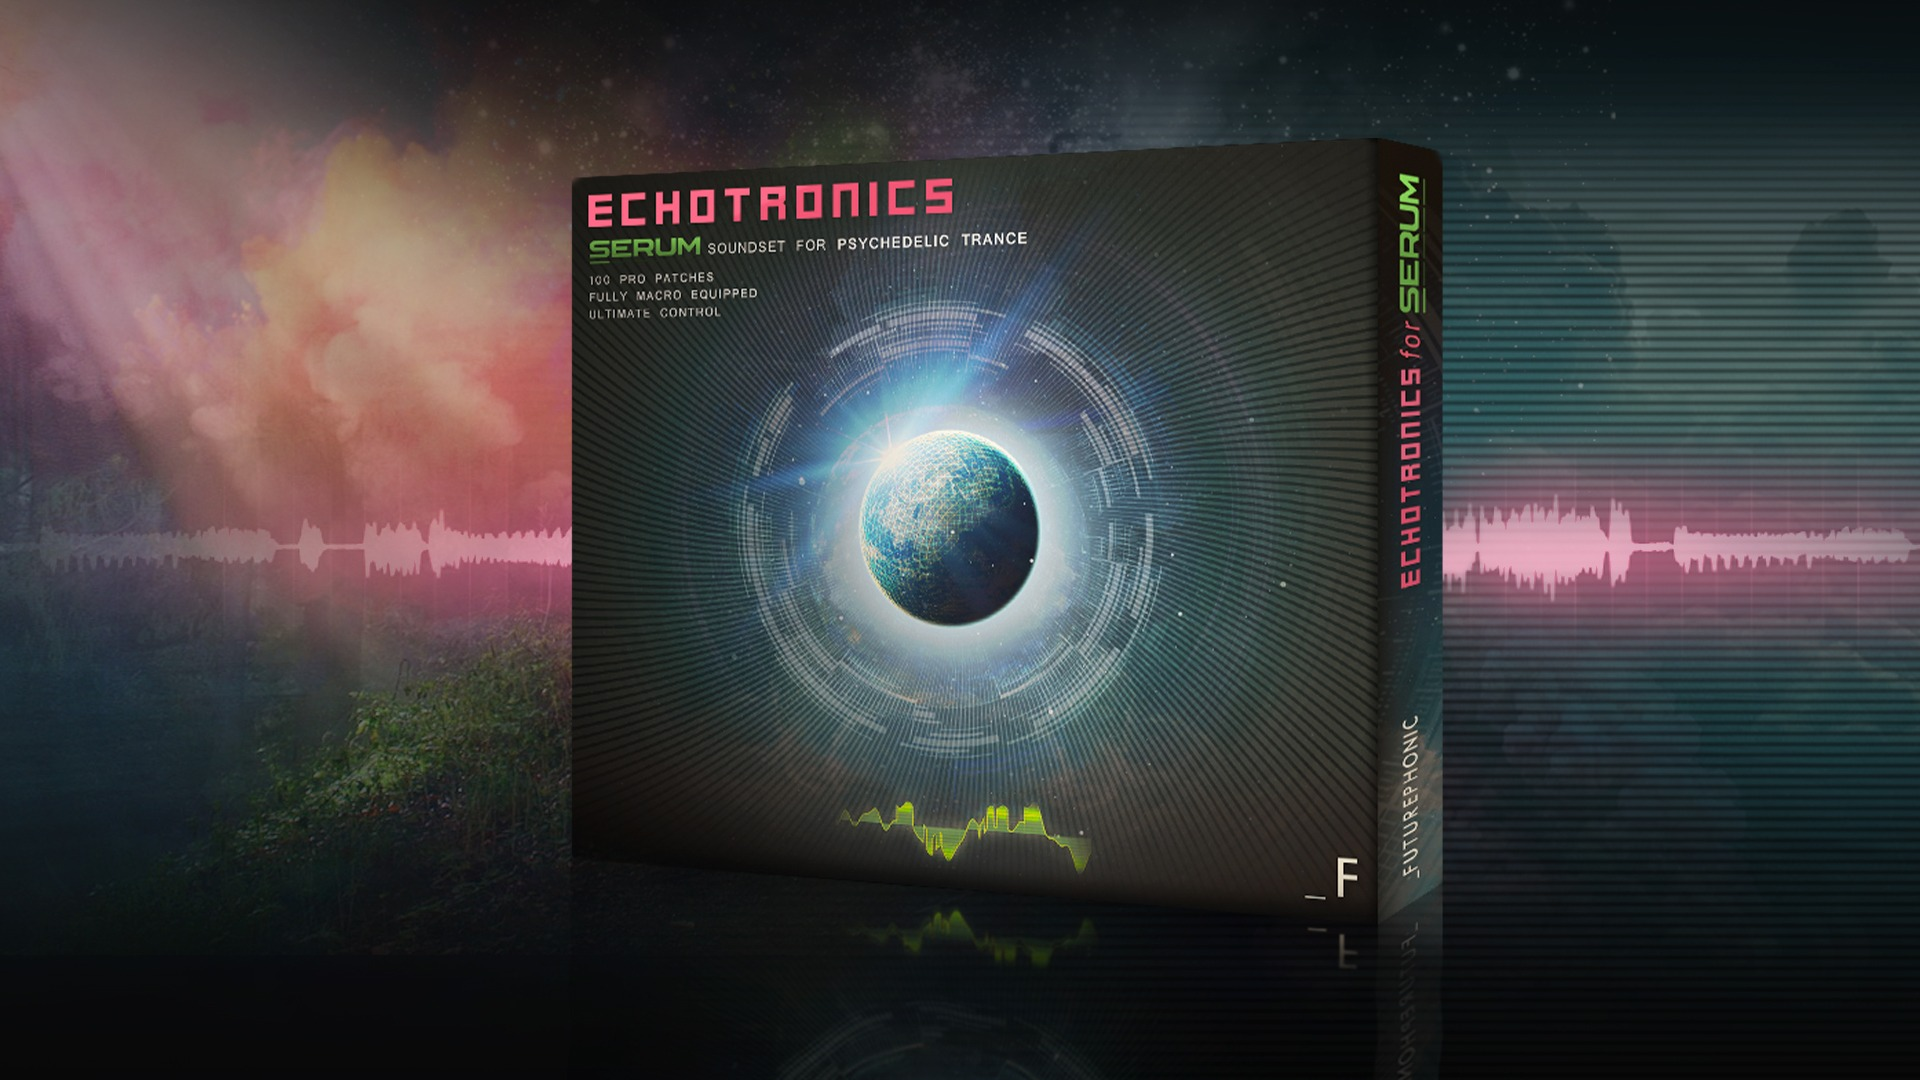 [Echotronics] for Serum